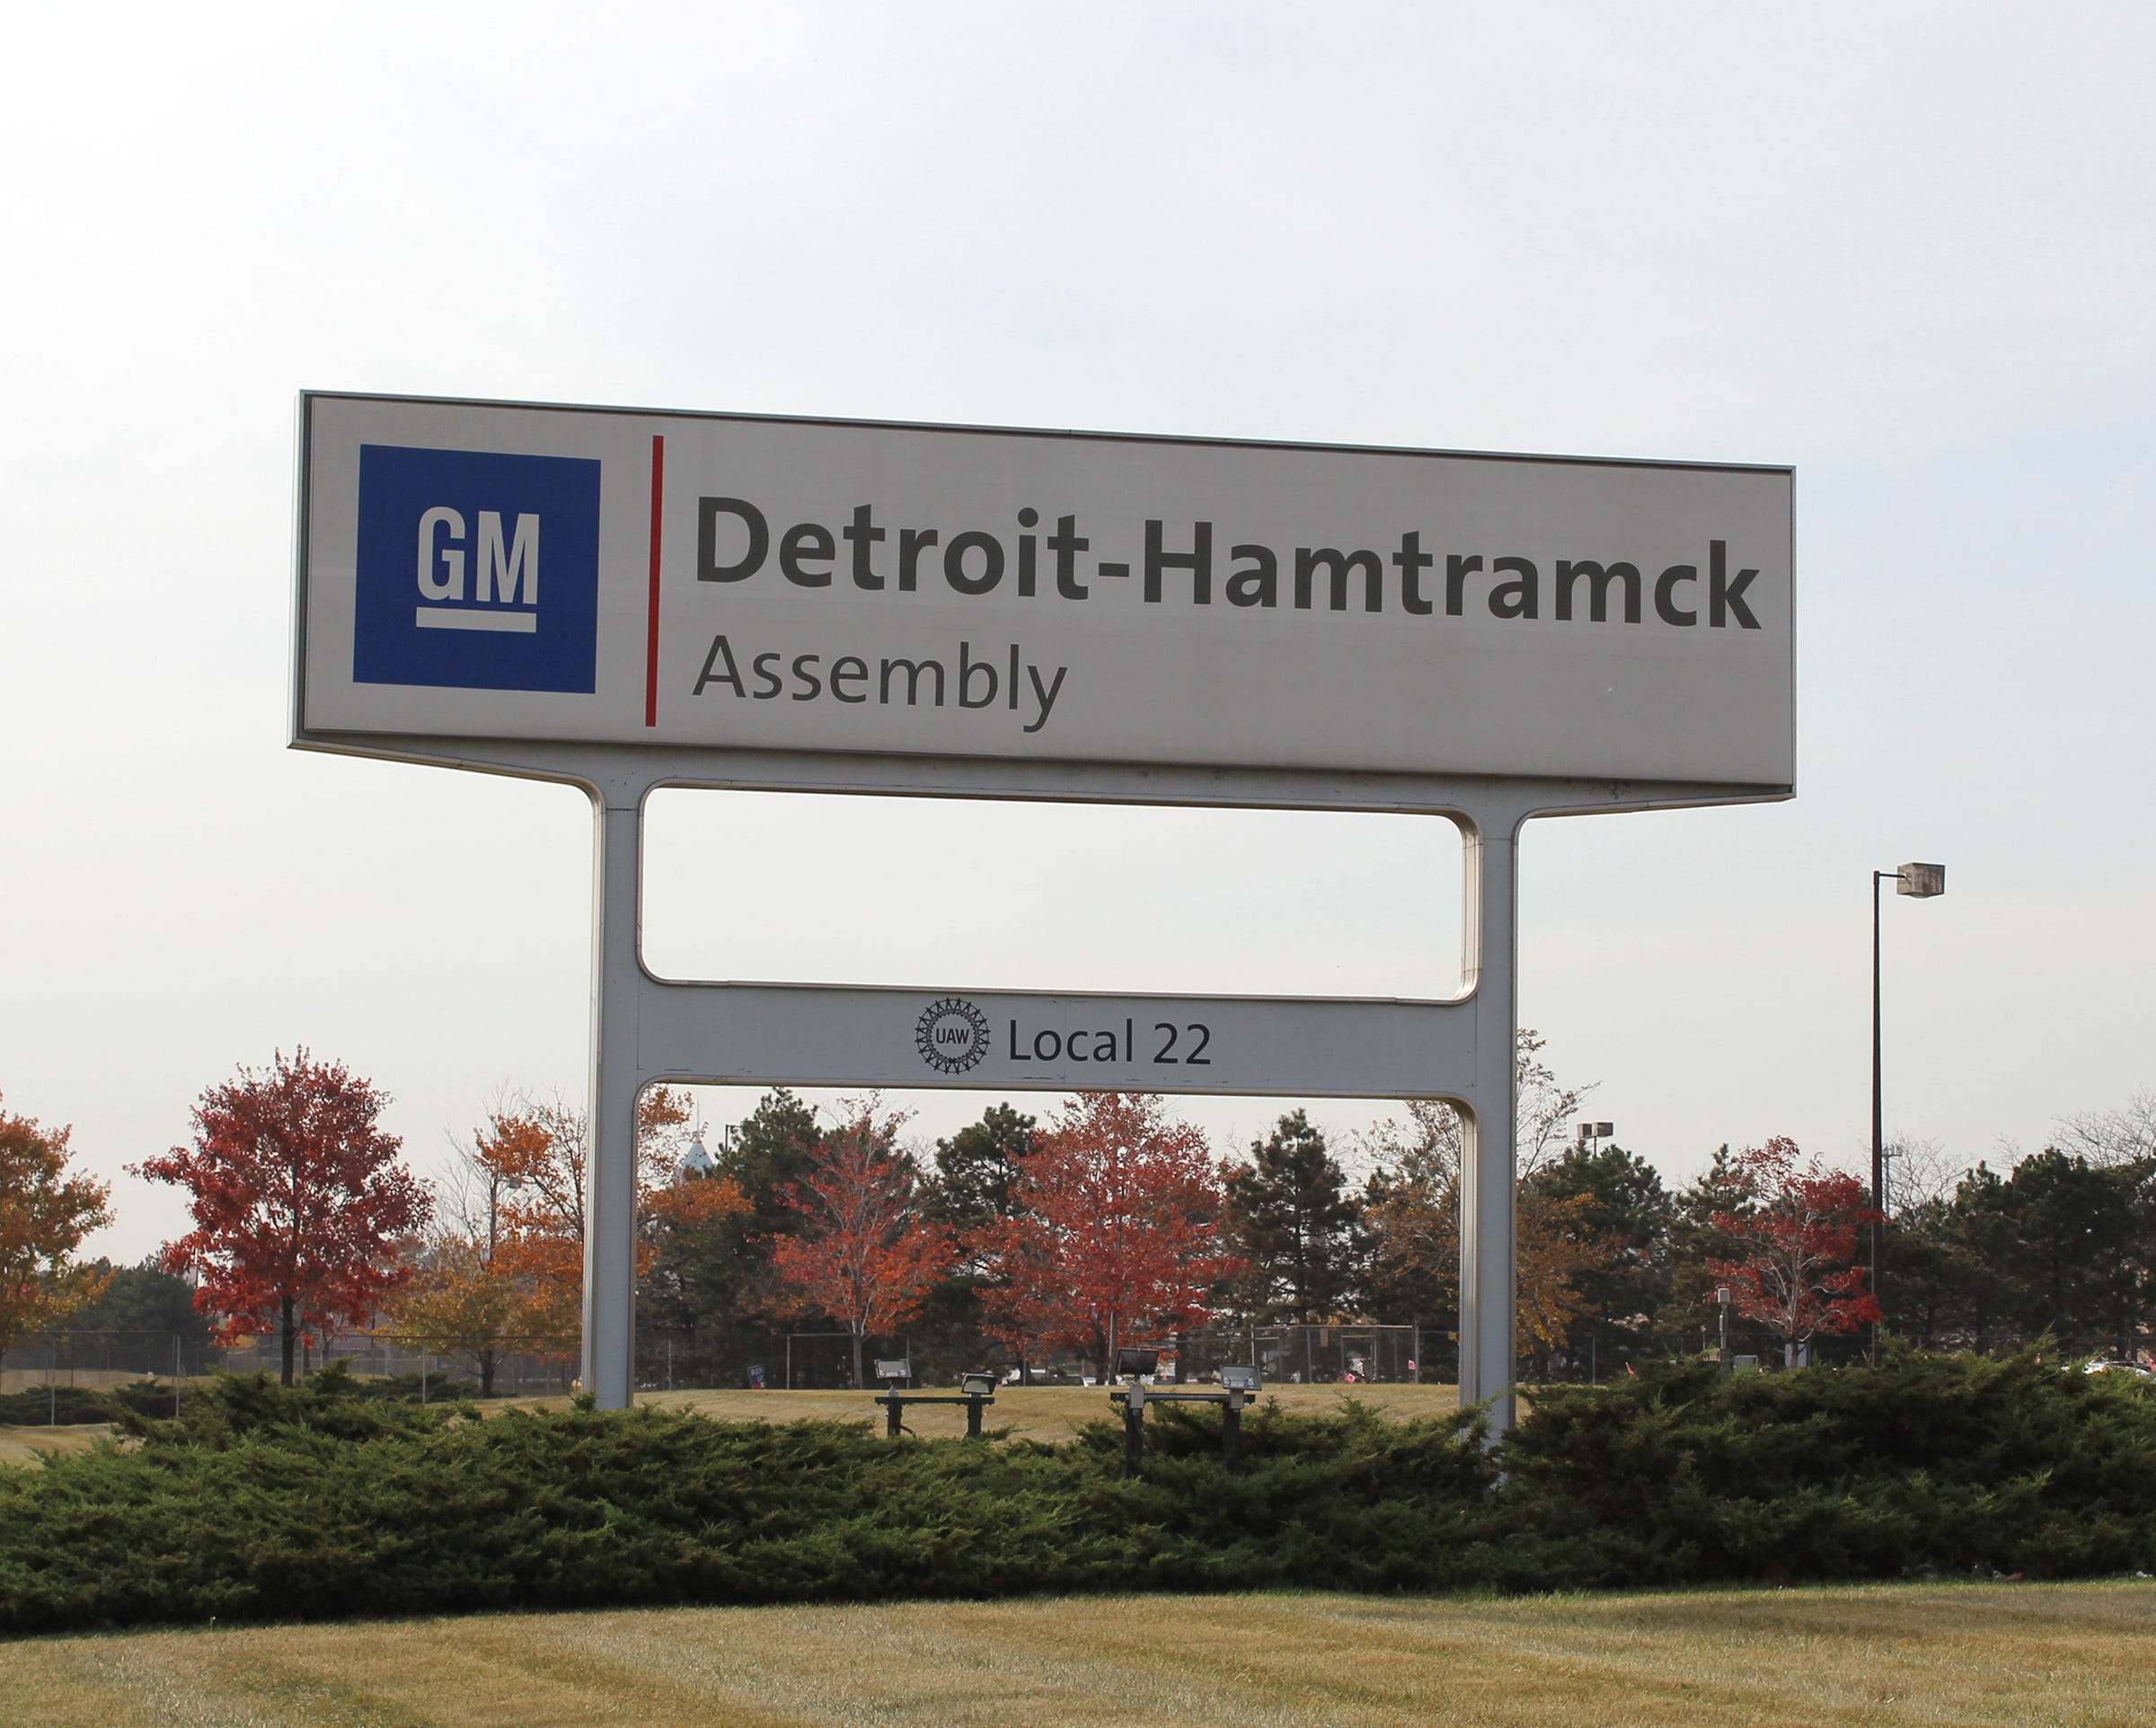 General Motors will nearly double its workforce at Detroit-Hamtramck Assembly plant by early 2016. It is adding a second shift and more than 1,200 hourly and salaried jobs.